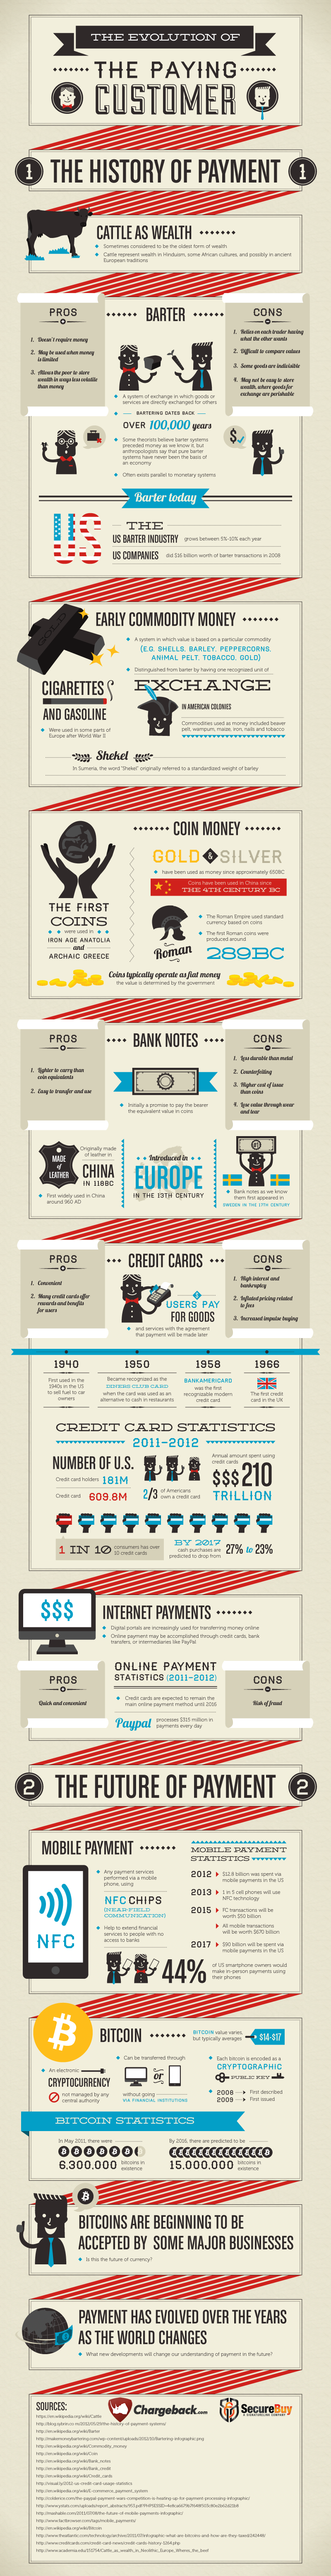 How the Payments Made By Customers Have Evolved Over the Years?